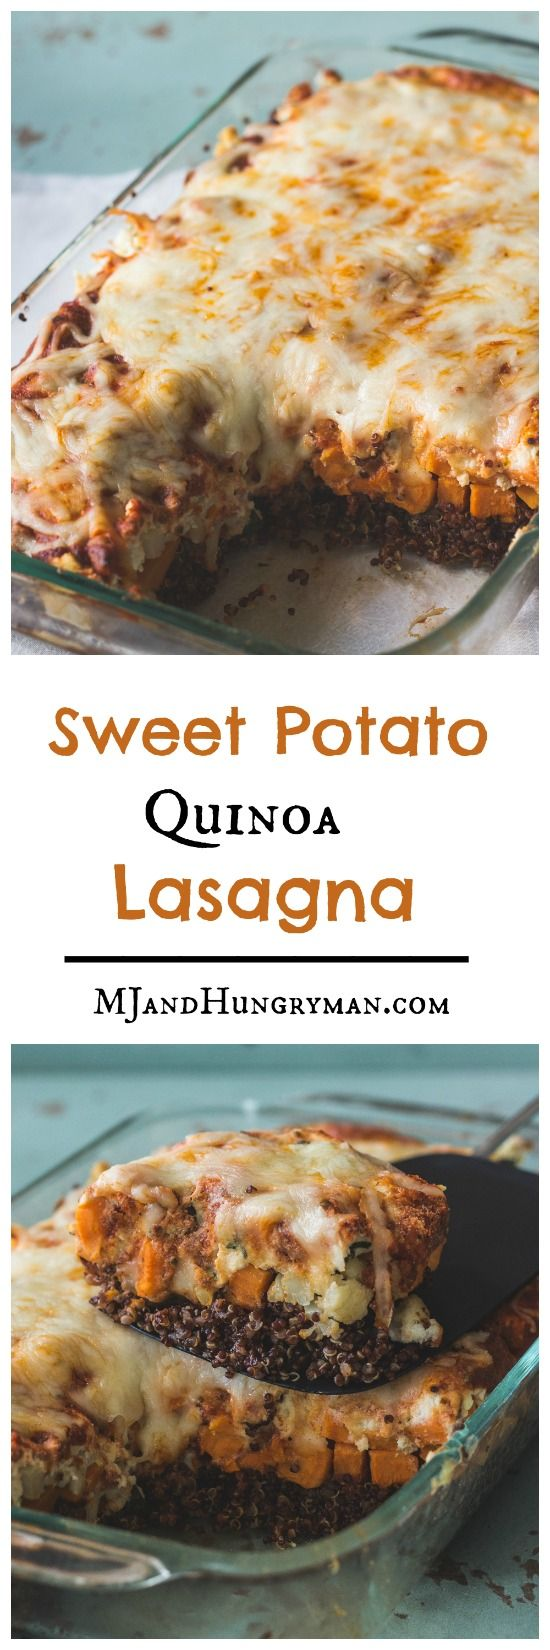 Vegetarian Sweet Potato Quinoa Lasagna - requires no boiling of noodles and the assembly couldn't be easier! // The Adventures of MJ and Hungryman